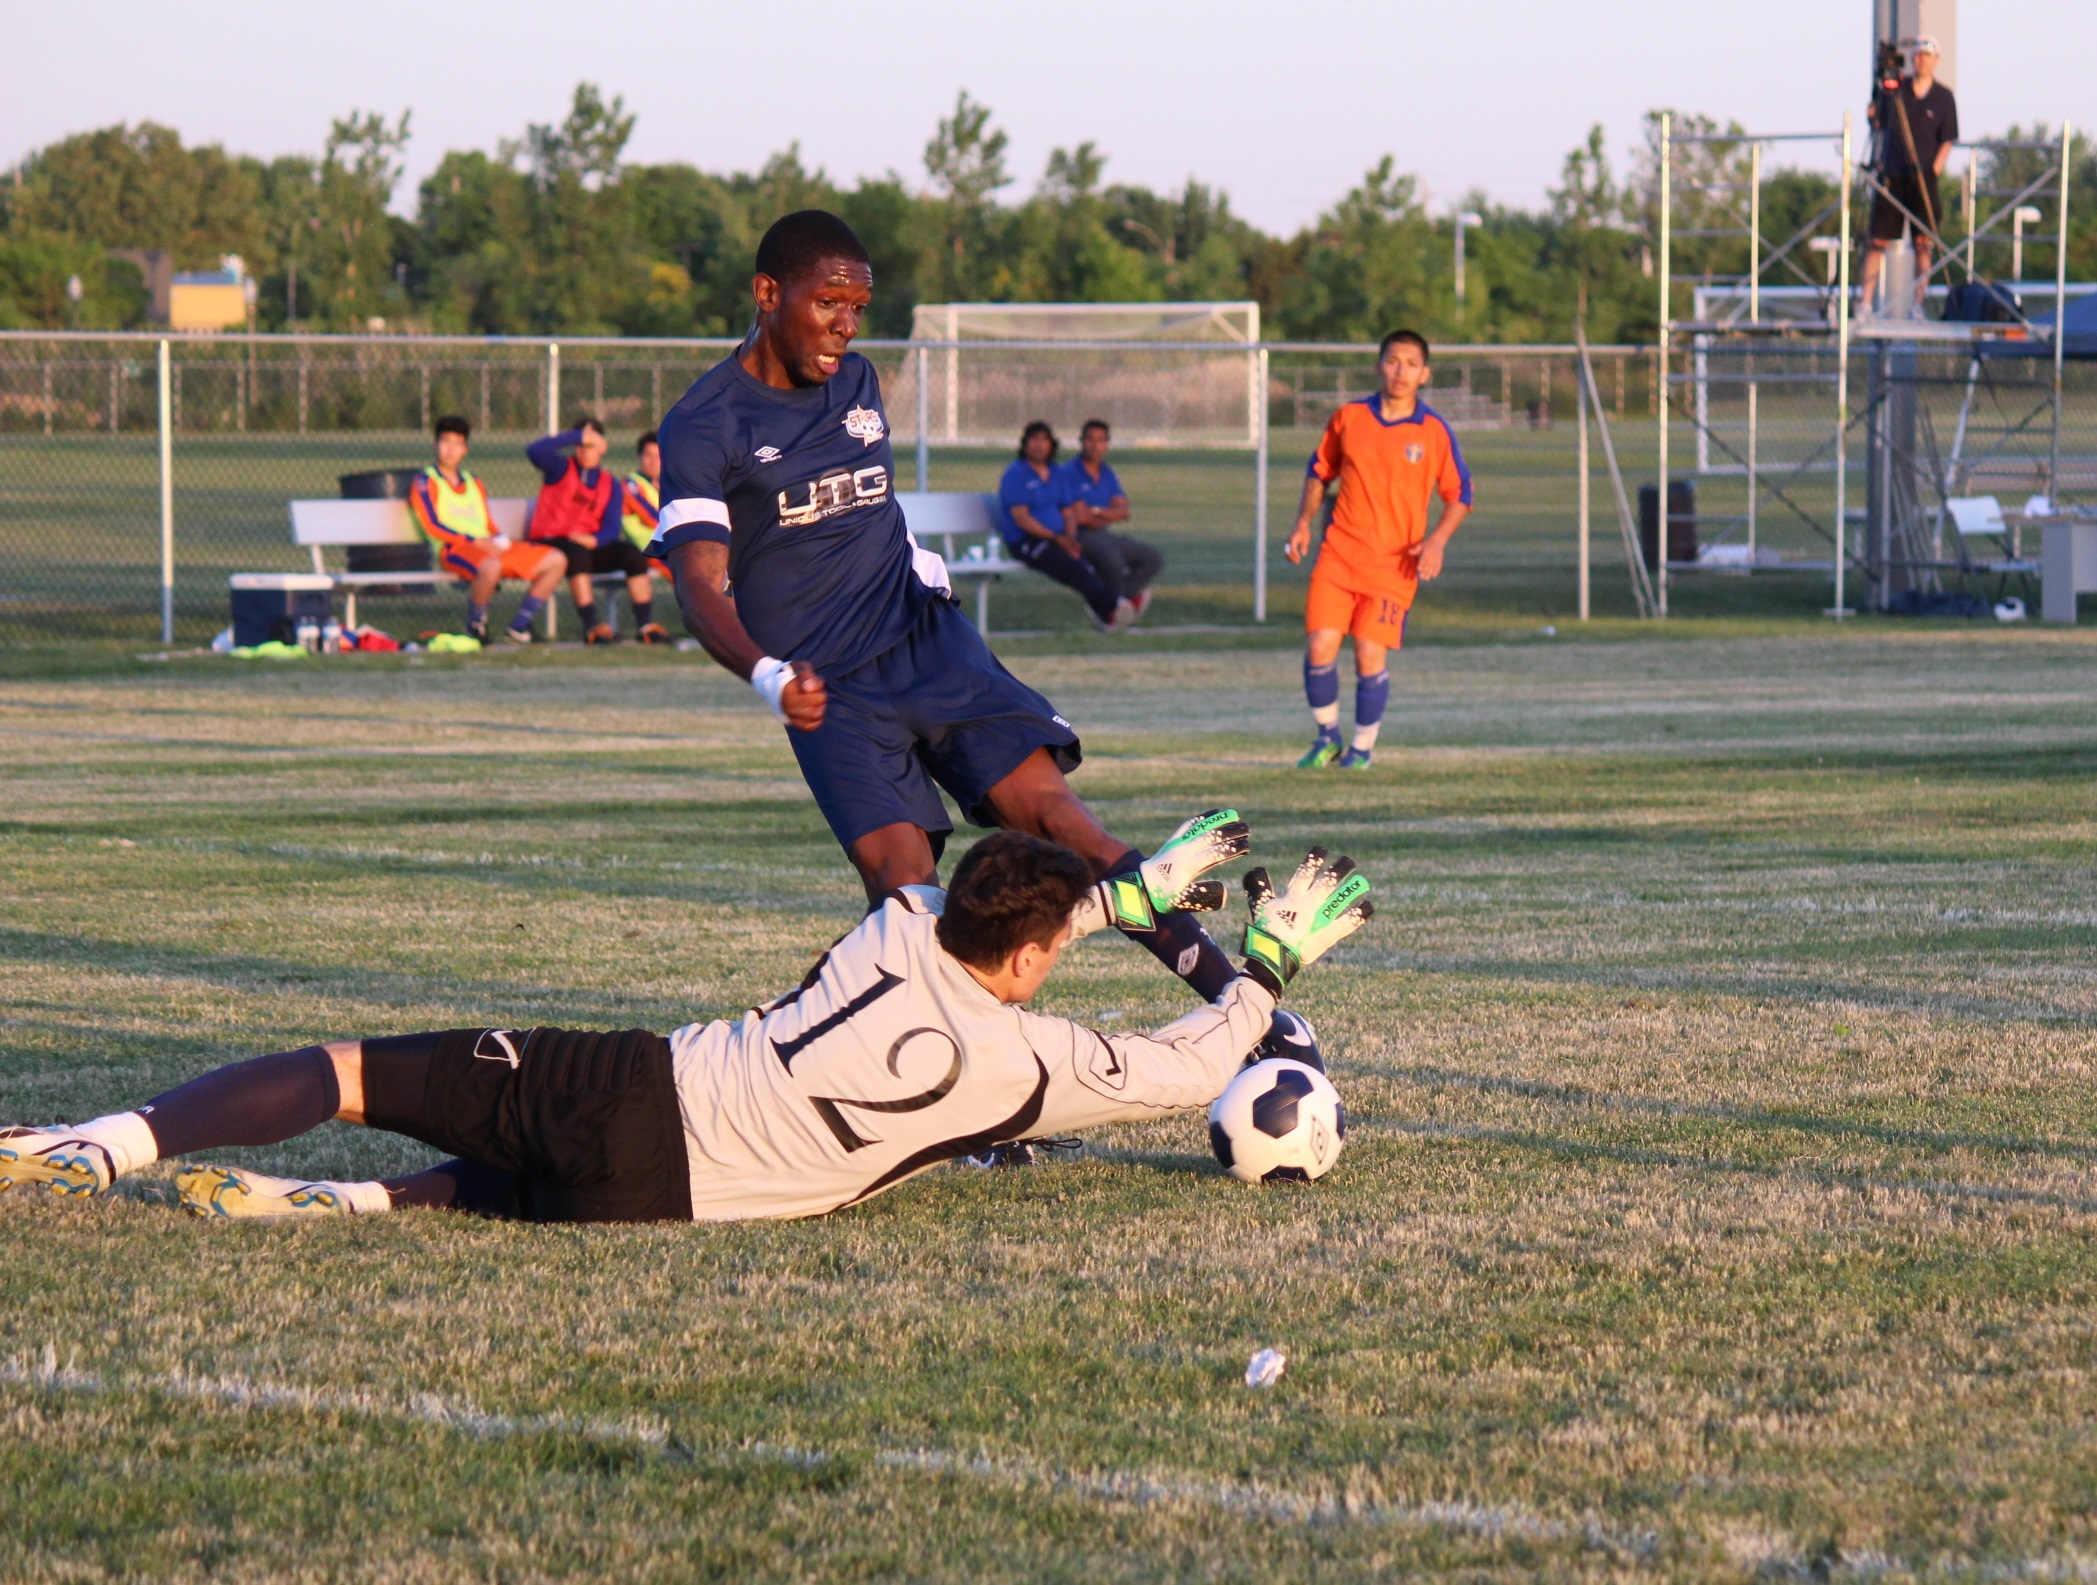 Windsor Stars take on Toronto International in League1 Ontario play at McHugh Park in Windsor, June 14, 2014. (Photo by Ricardo Veneza)